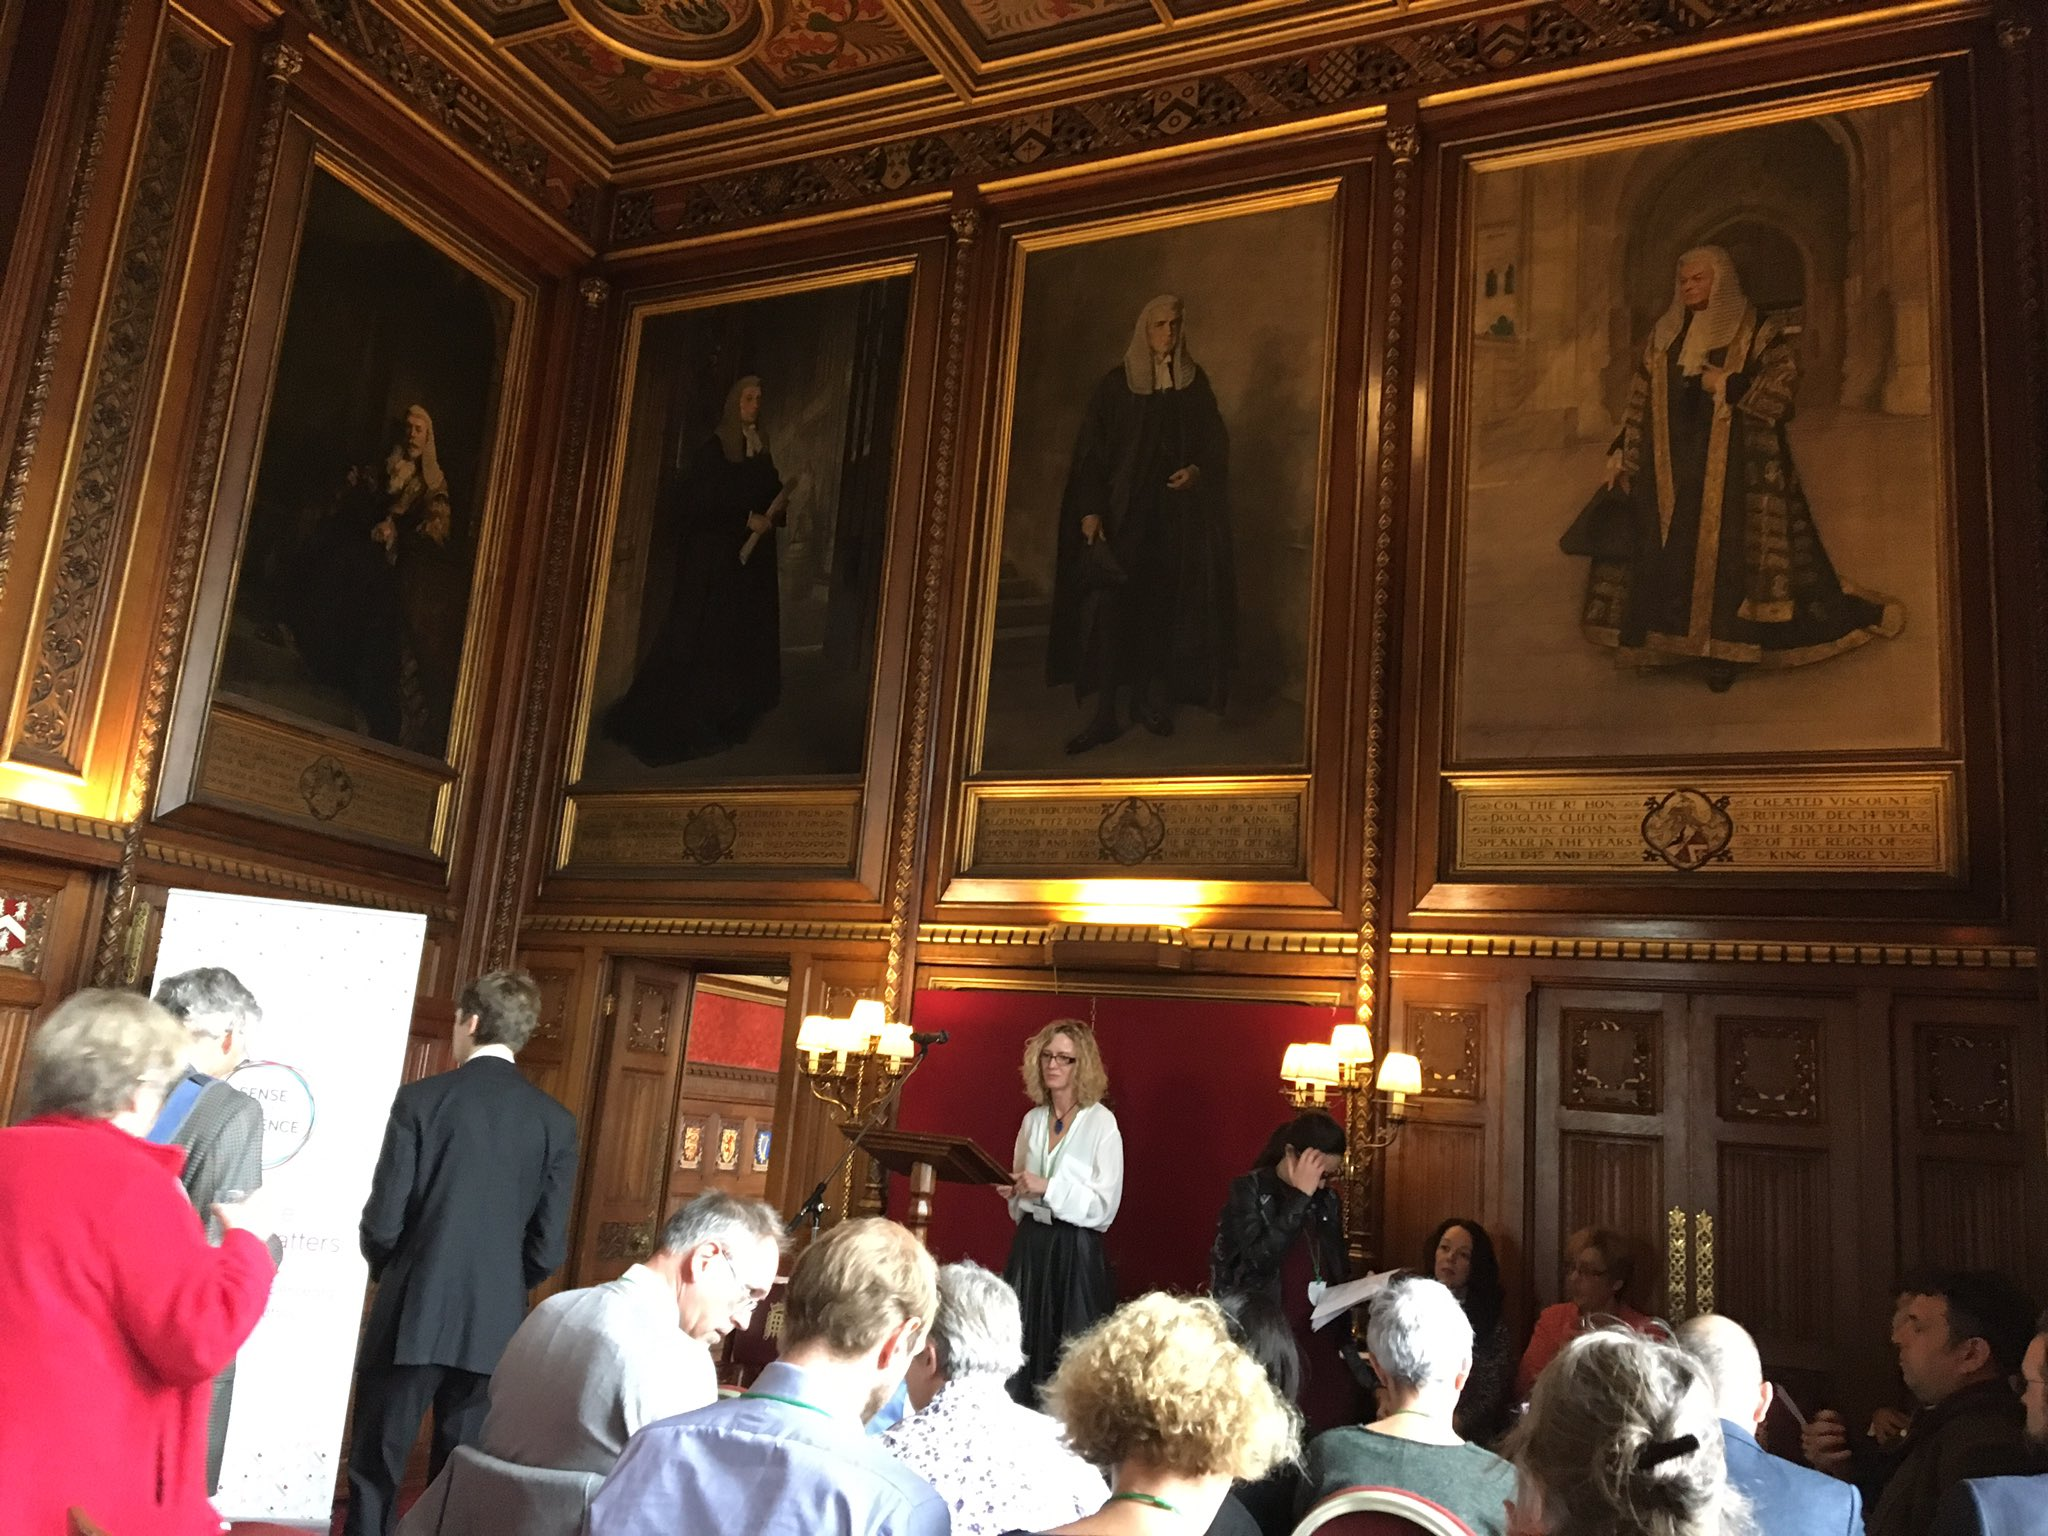 Speakers House filling up for @senseaboutsci event on the importance of evidence https://t.co/5705rzW6Yo